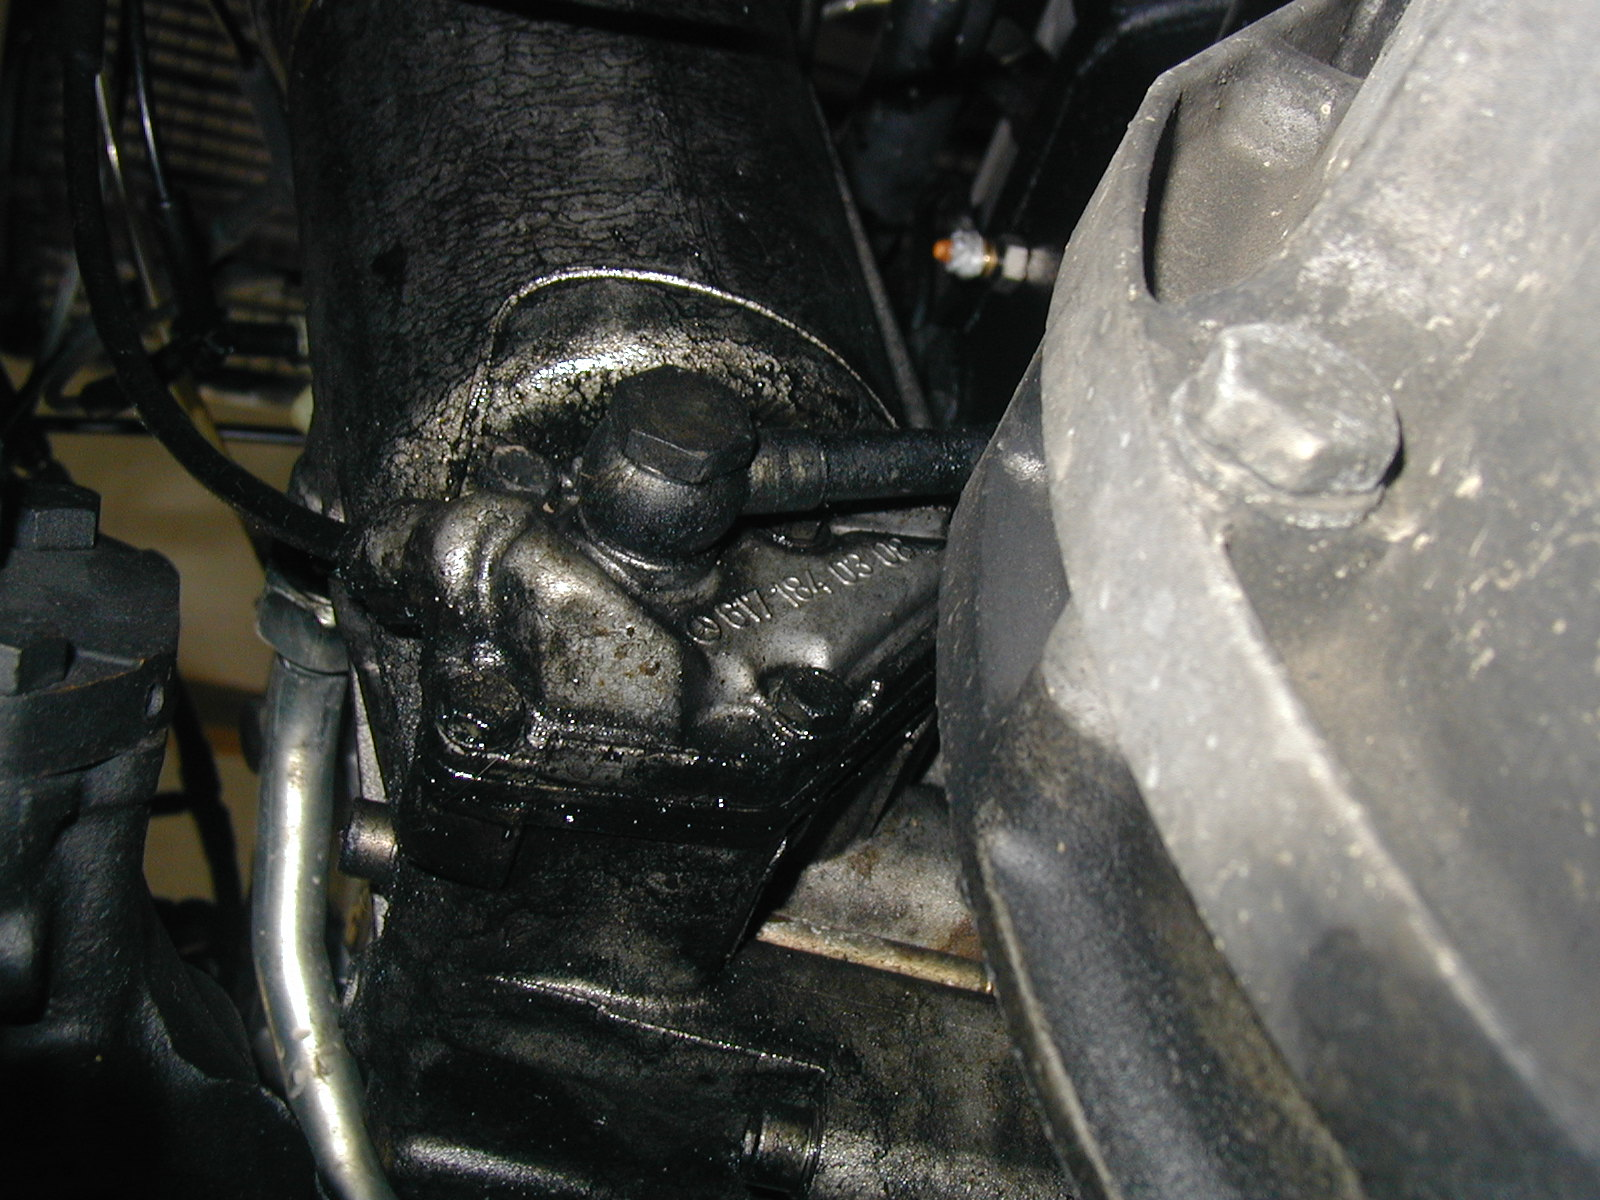 Isolating And Repairing Diesel Engine Fluid Leaks Transmission Clk320 Fuel Filter Problem